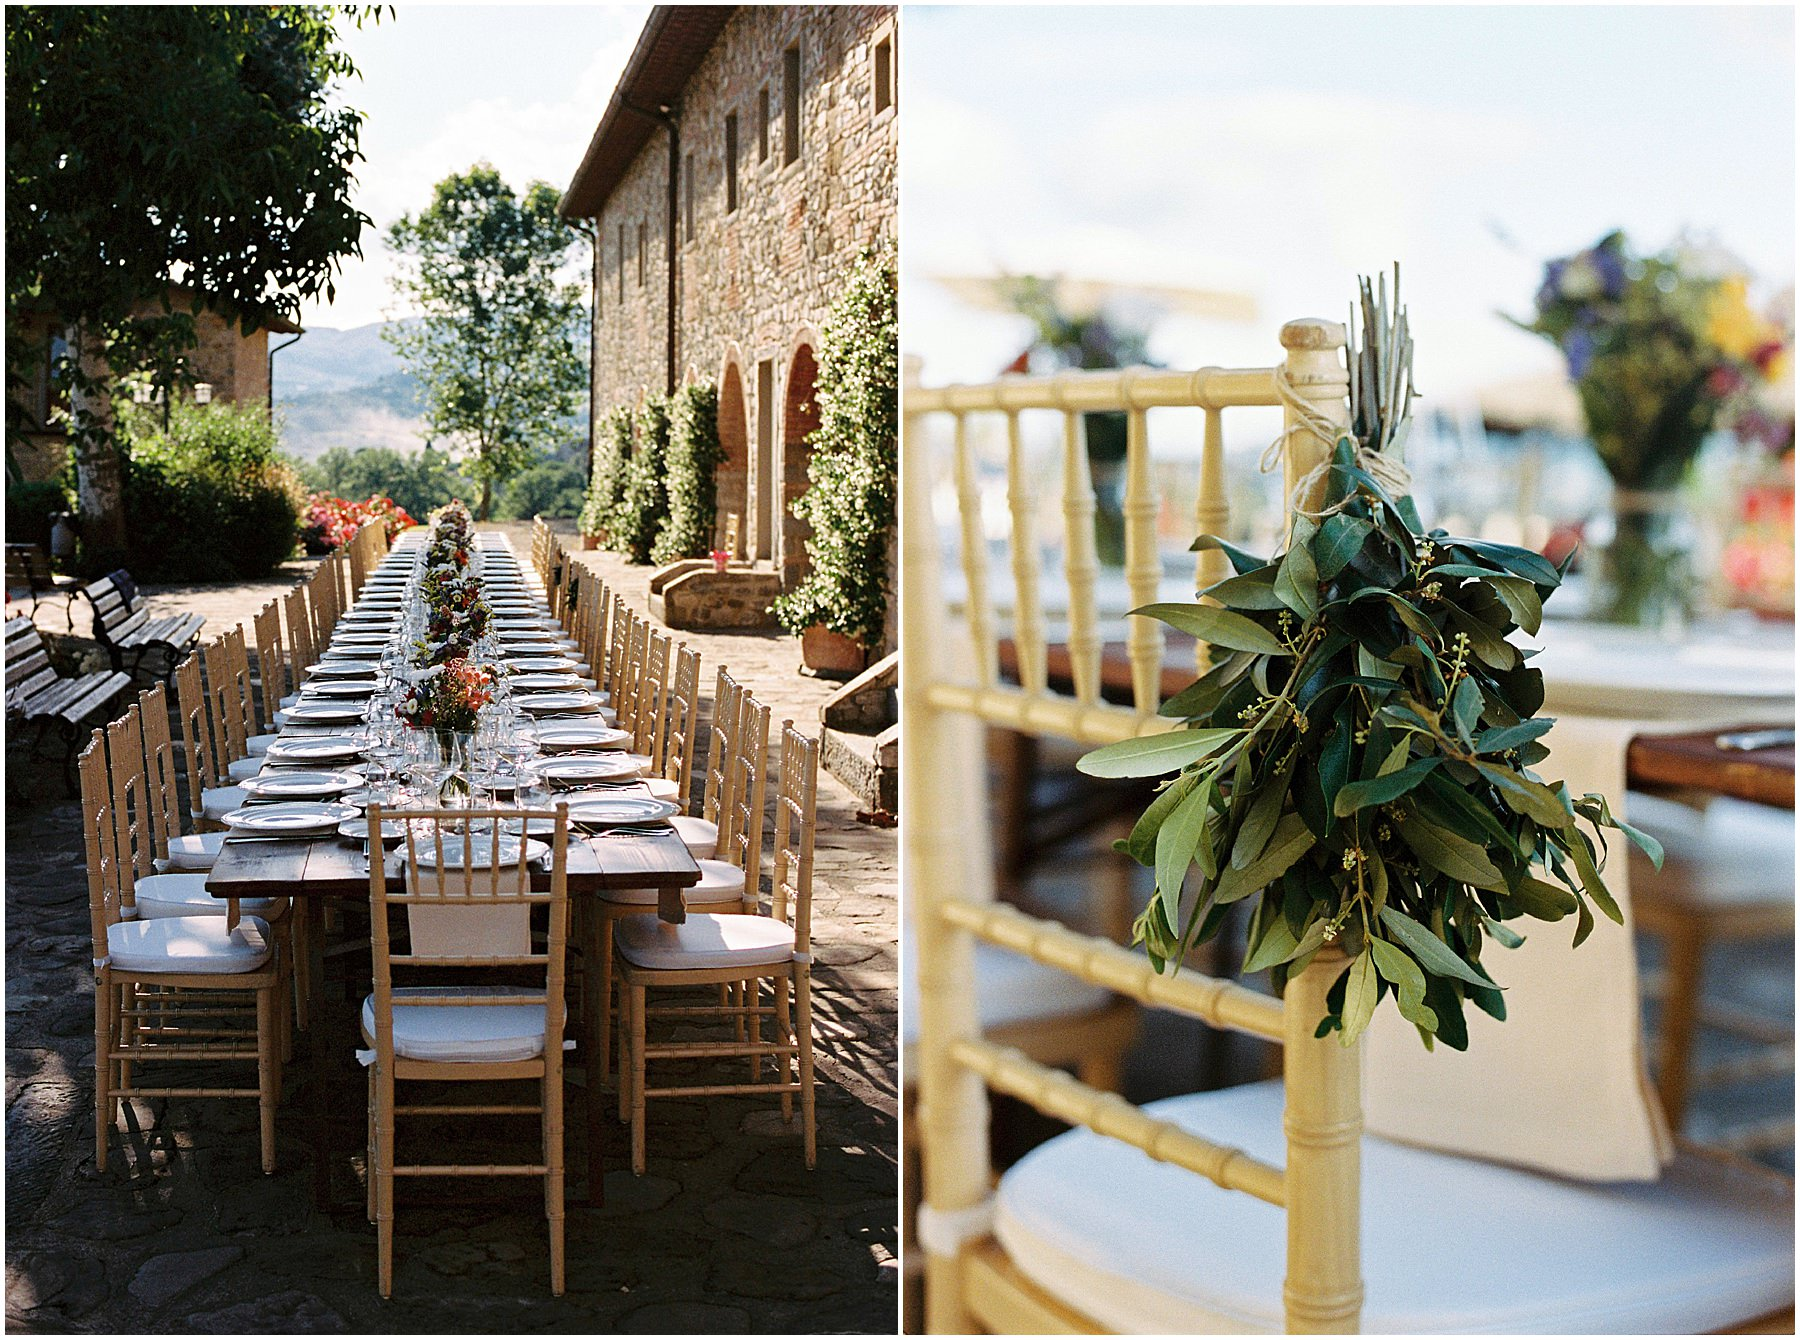 Wedding table setting in Tuscany